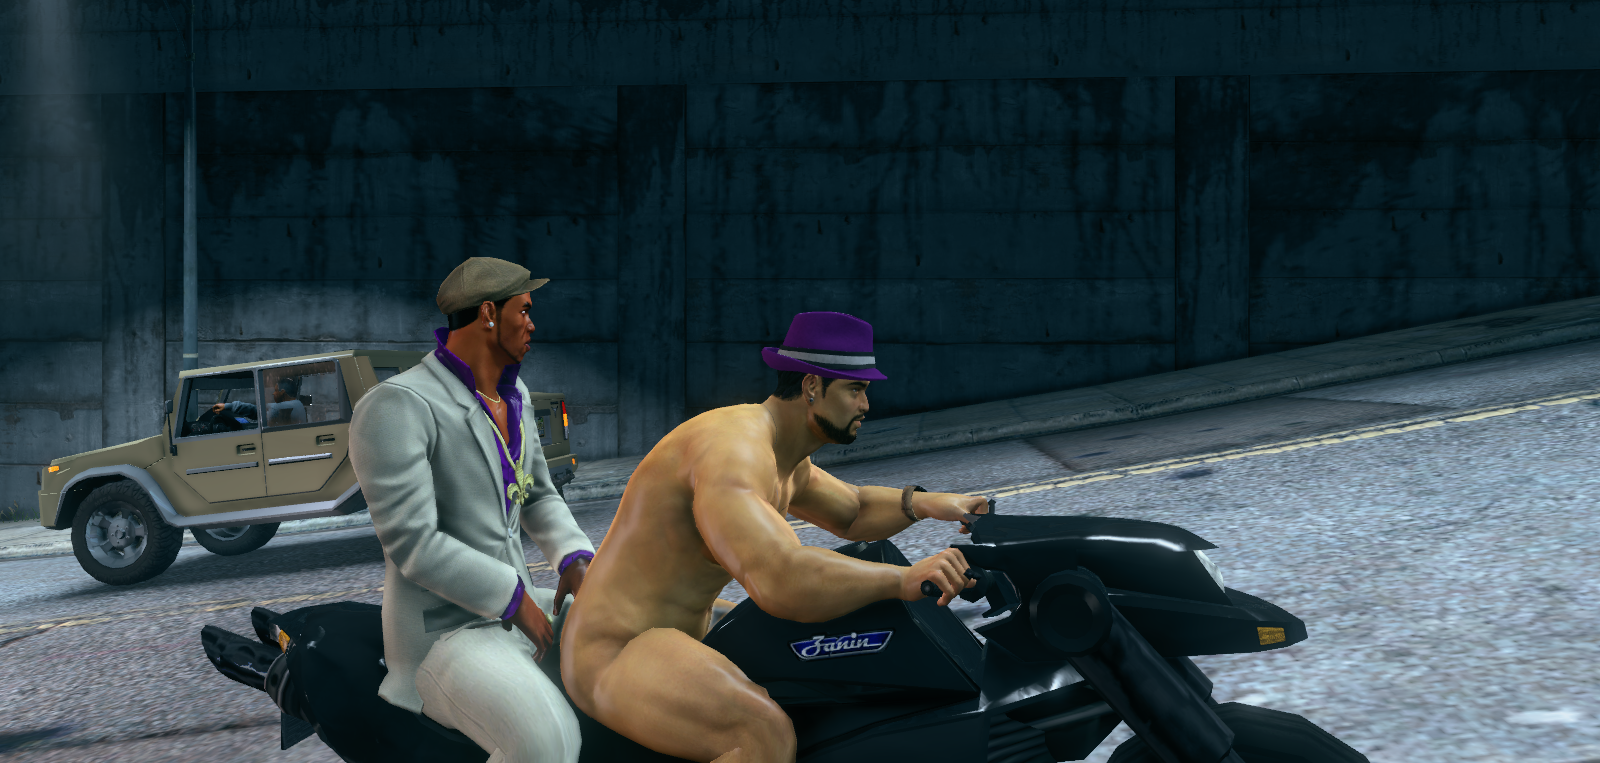 Nude mod saints row 4 vagina uncensored  porn picture